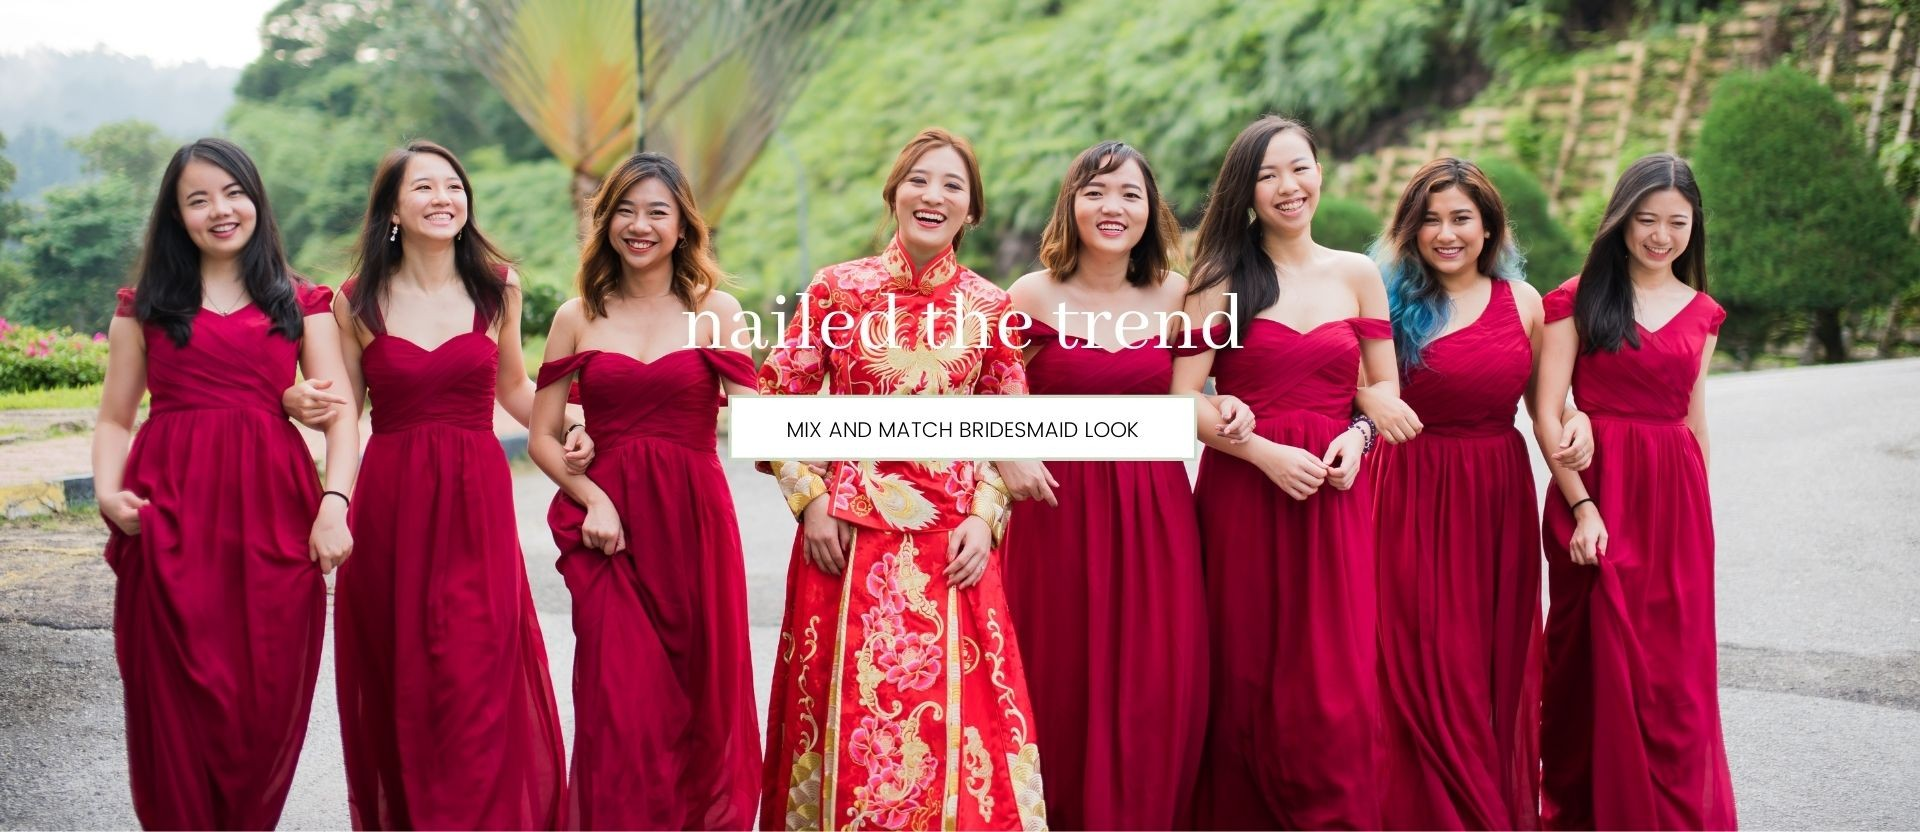 MIX AND MATCH BRIDESMAID STYLES: NAIL THE TREND